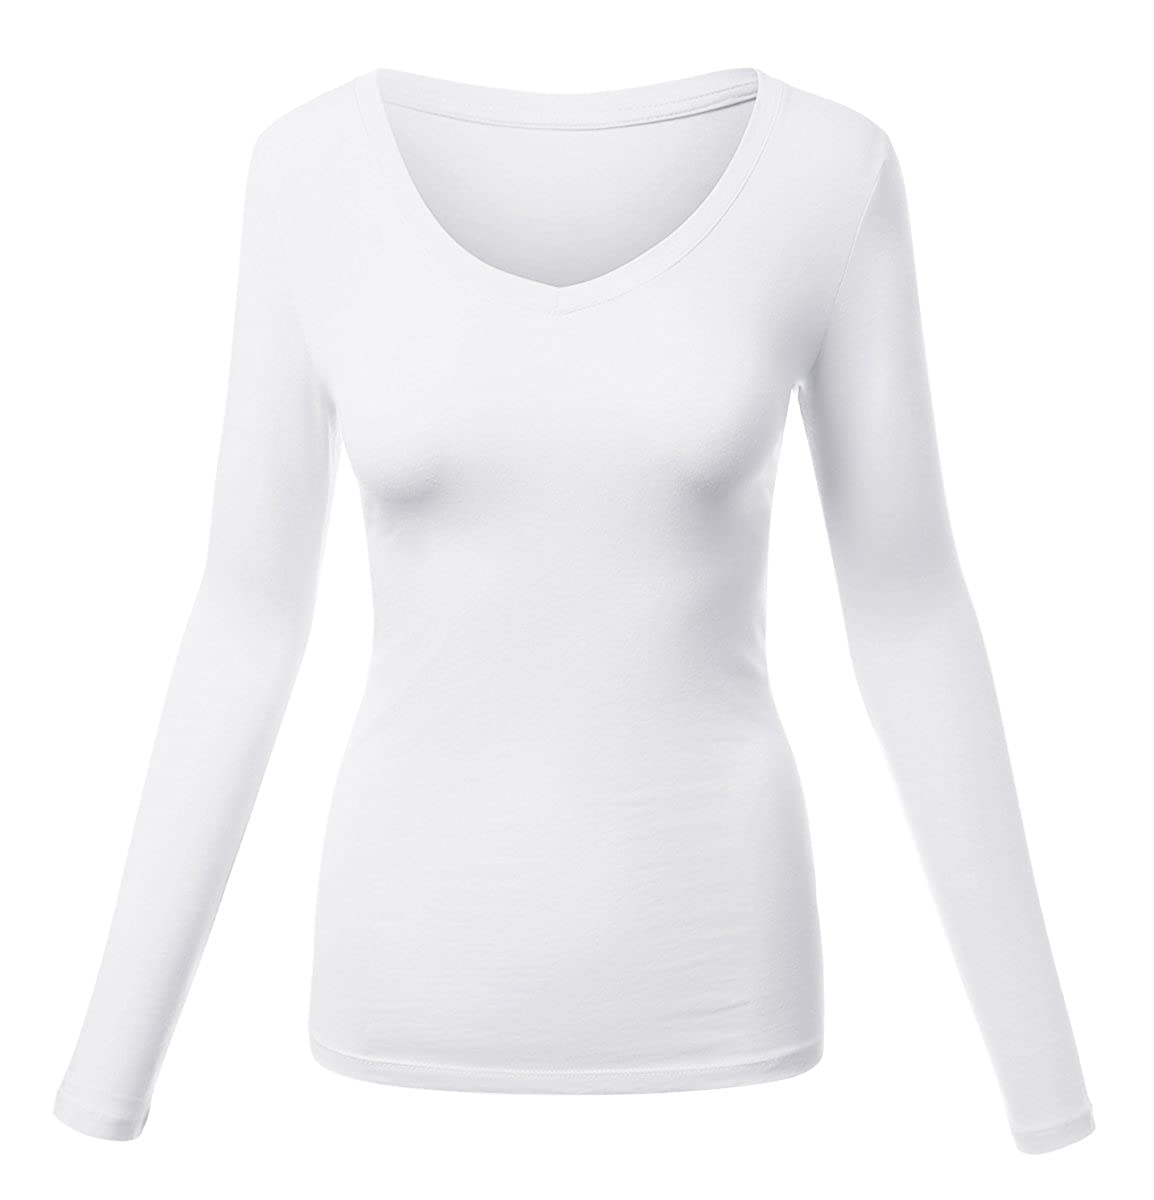 Meilleur Mode Womens Basic Long Sleeve V Neck Tee Everyday Casual Shirts